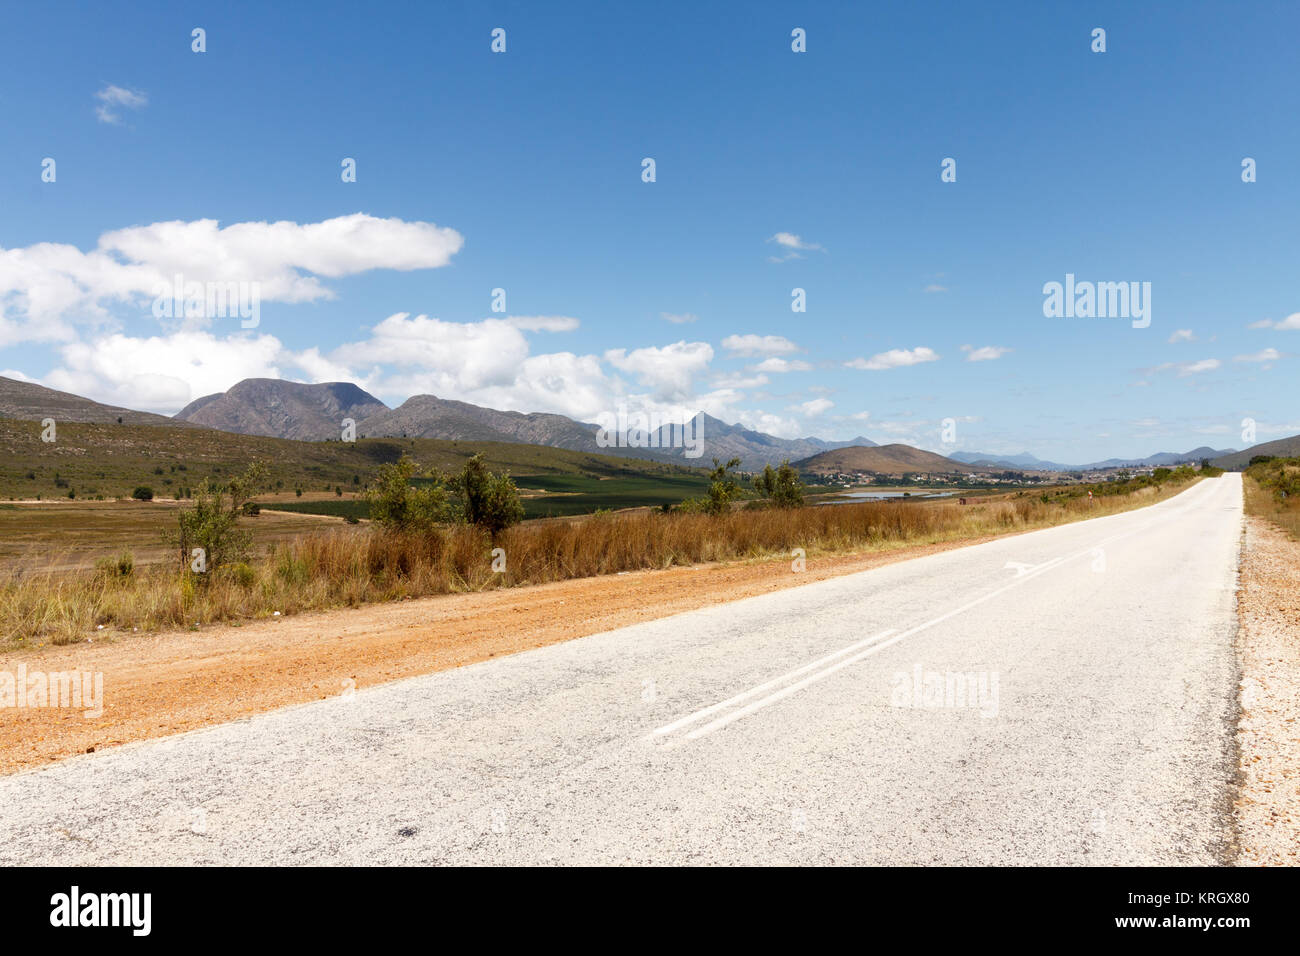 Road Lines Leading to NoWhere - Stock Image